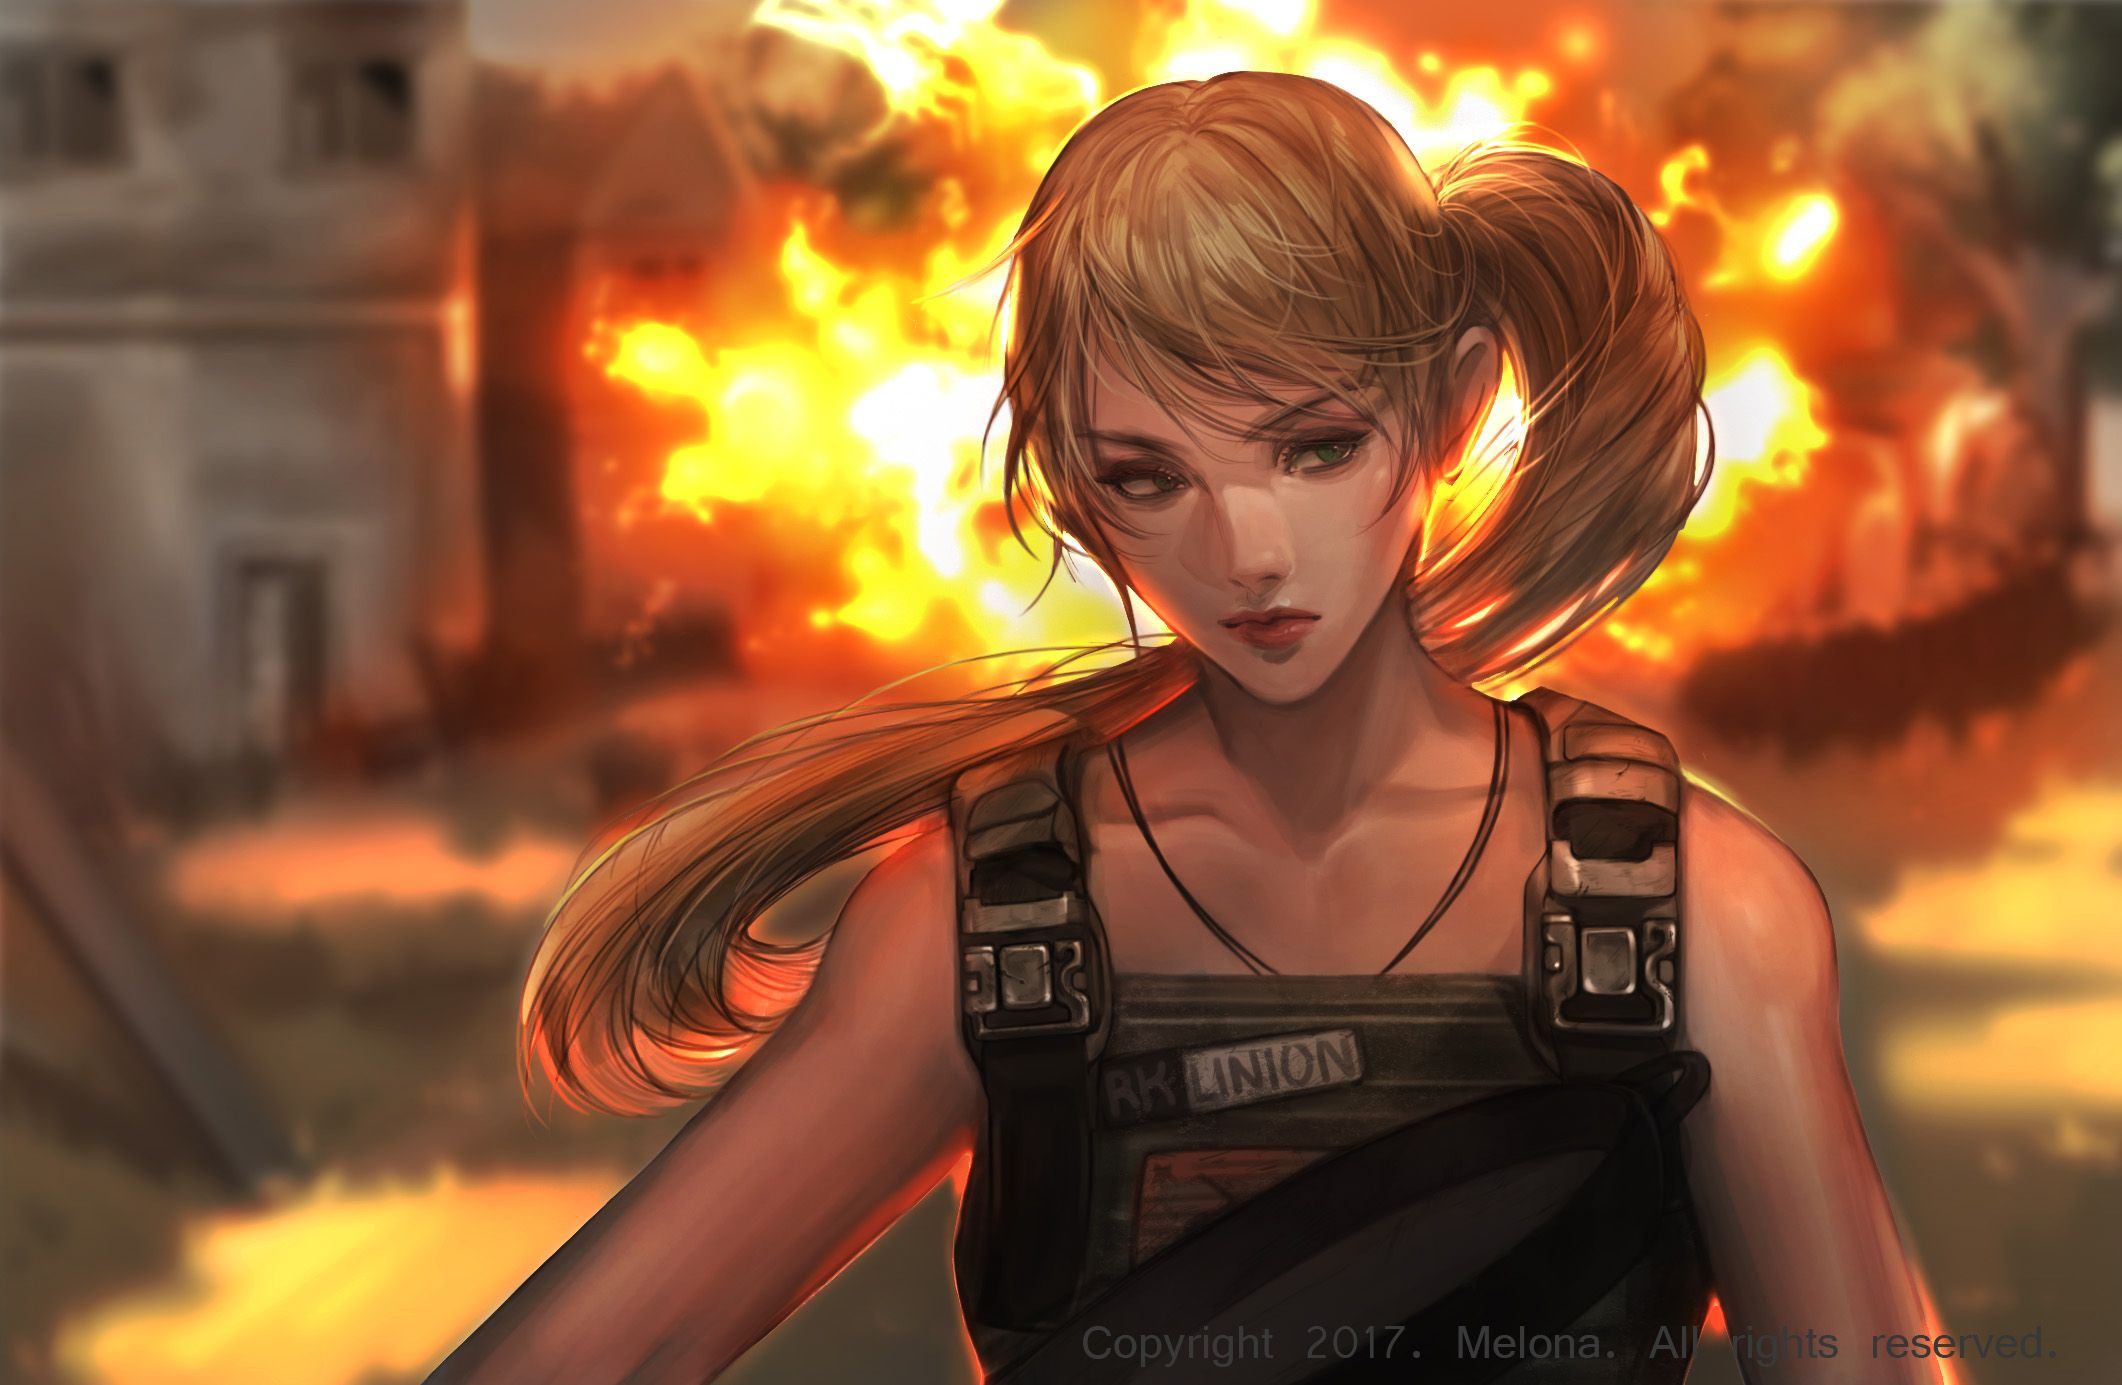 Pubg Real Girl Wallpaper: Playerunknown's Battlegrounds Fanart. PUBG Fan Art. It's